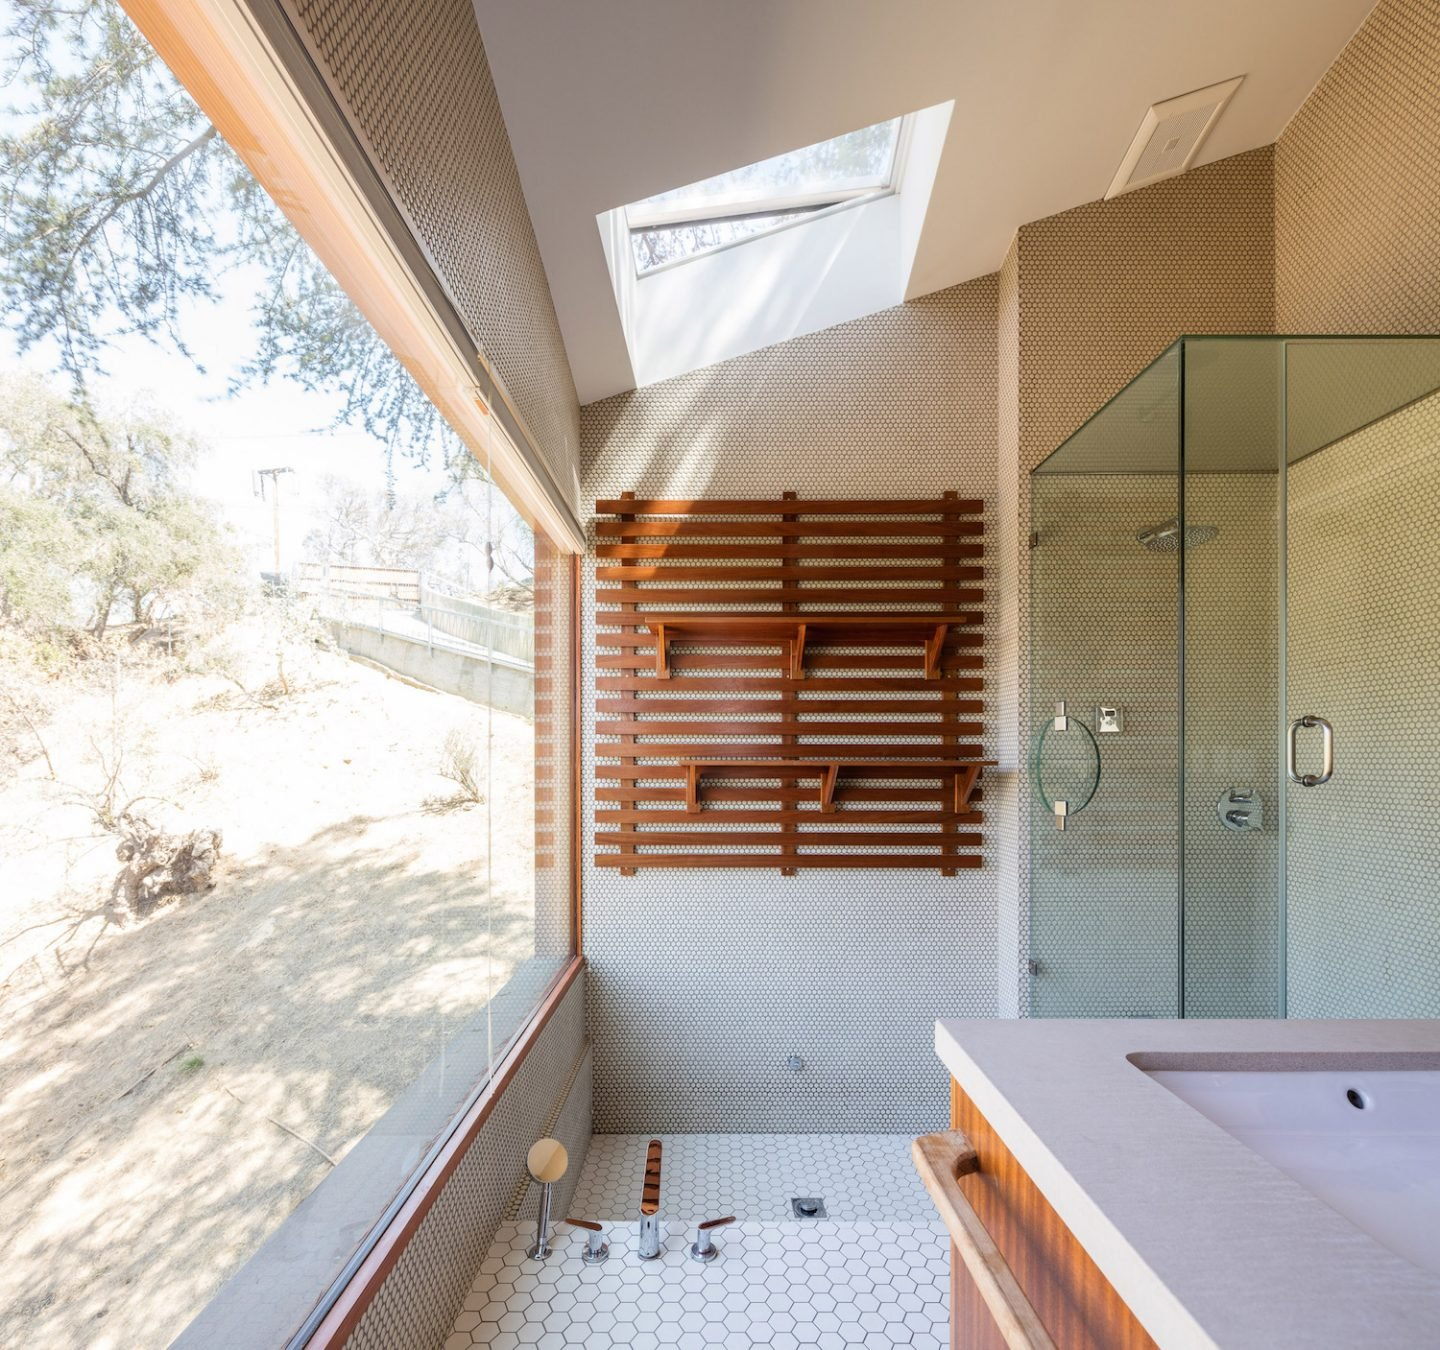 architecture_houseintrees_anonymousarchitects_4